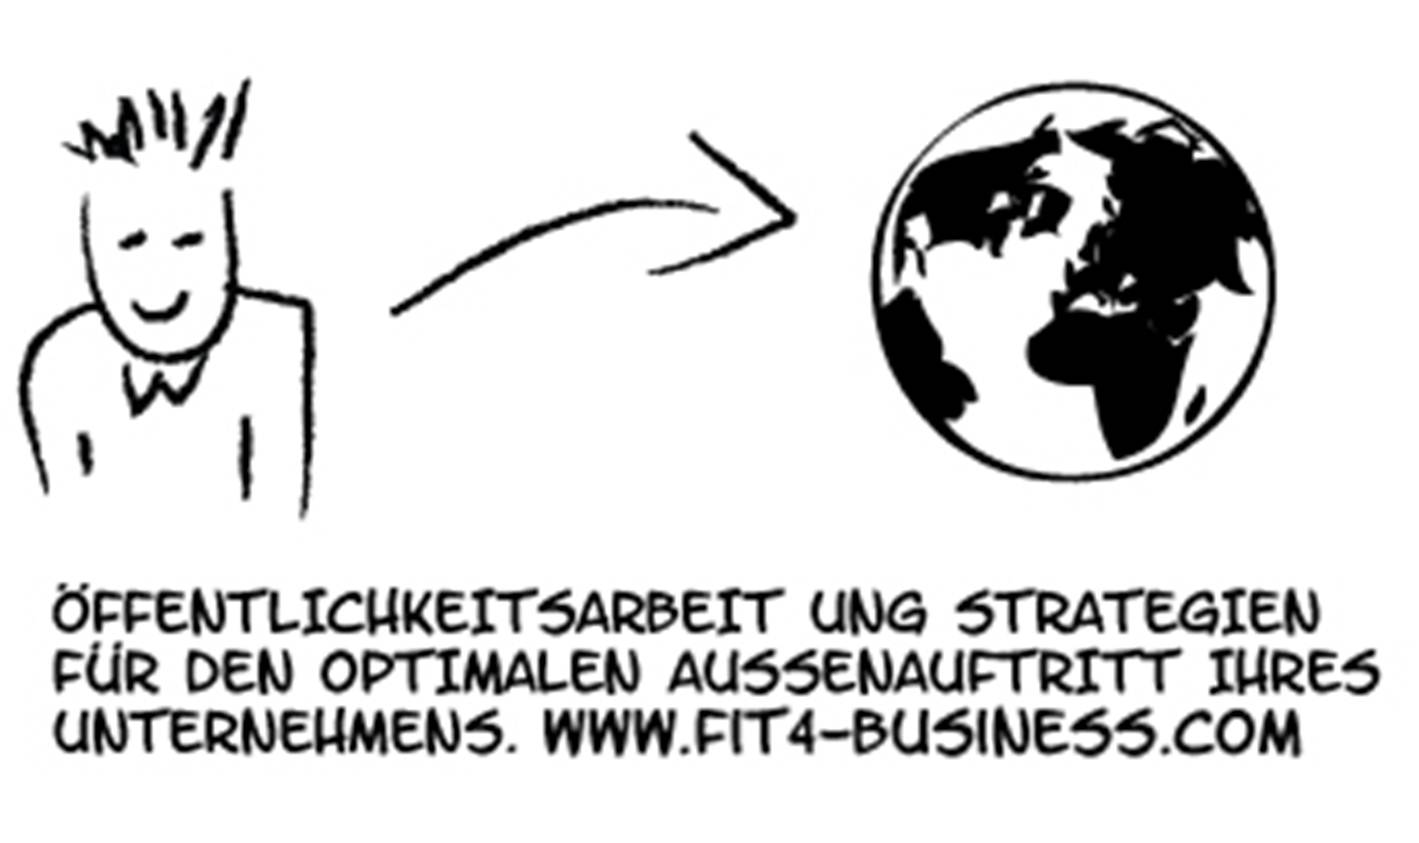 Social Media, Pressearbeit, Vertriebsstrategie, Marketingstrategie